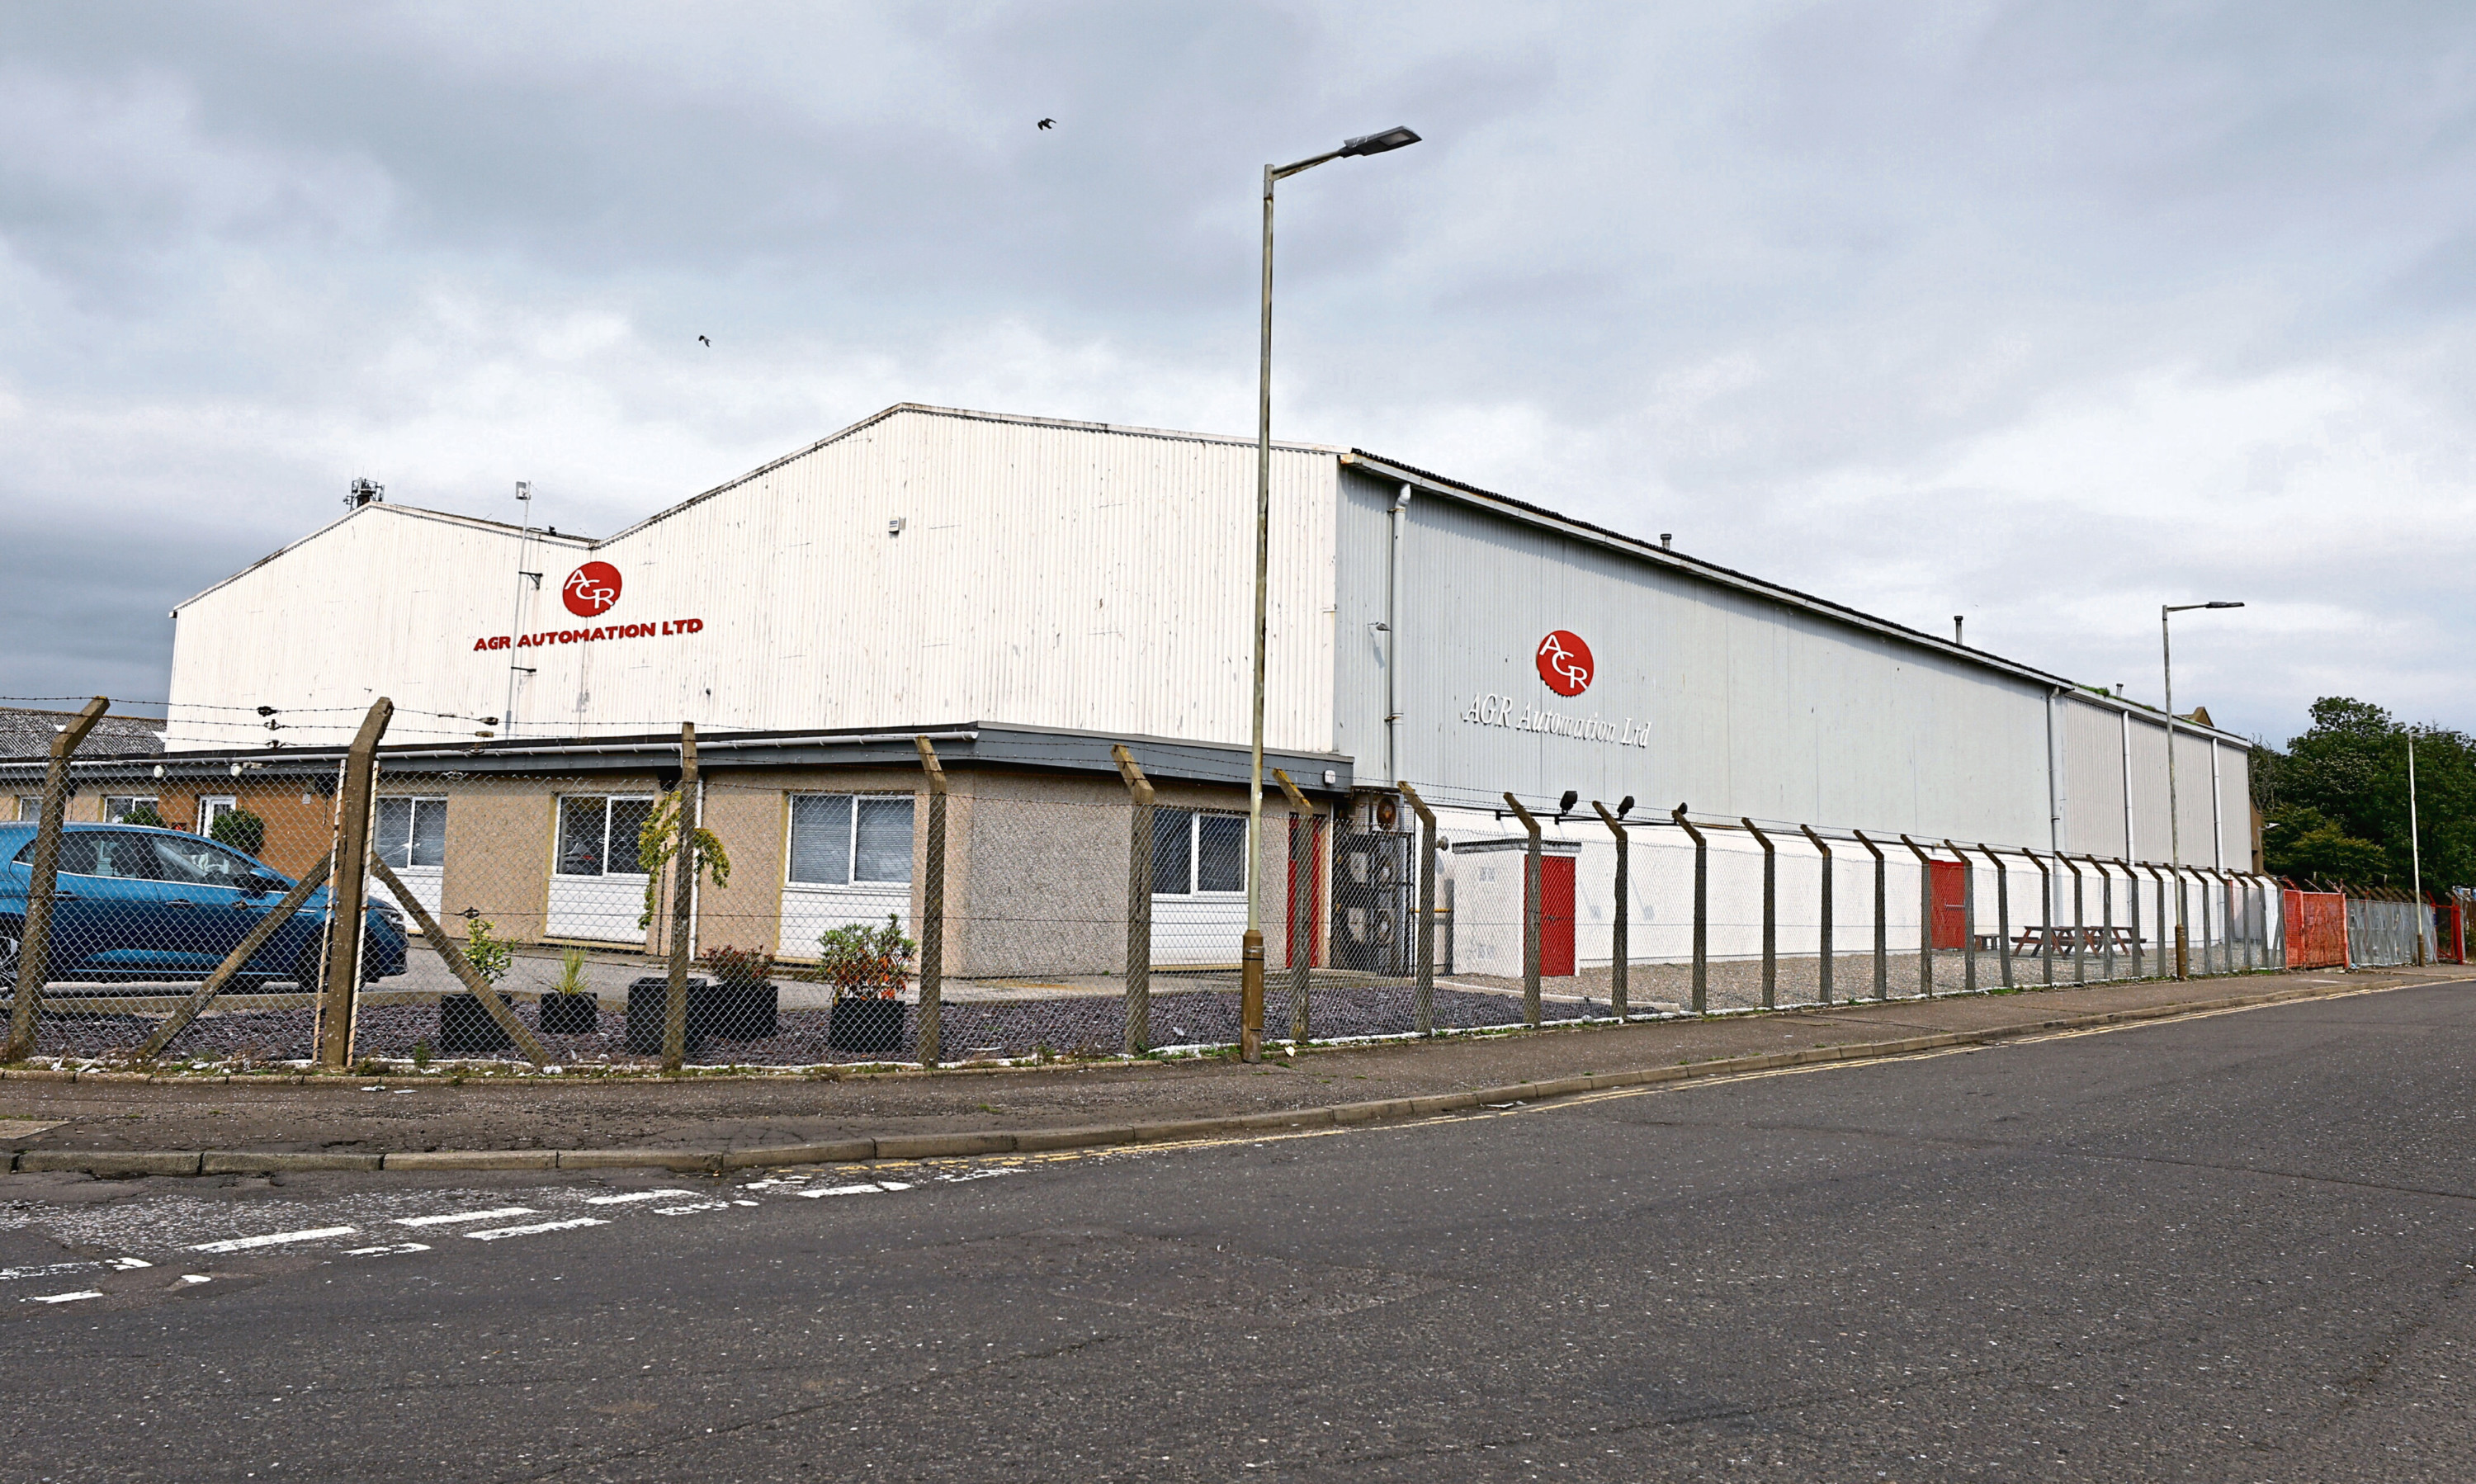 The AGR Automation premises at the Elliot Industrial Estate in Arbroath.